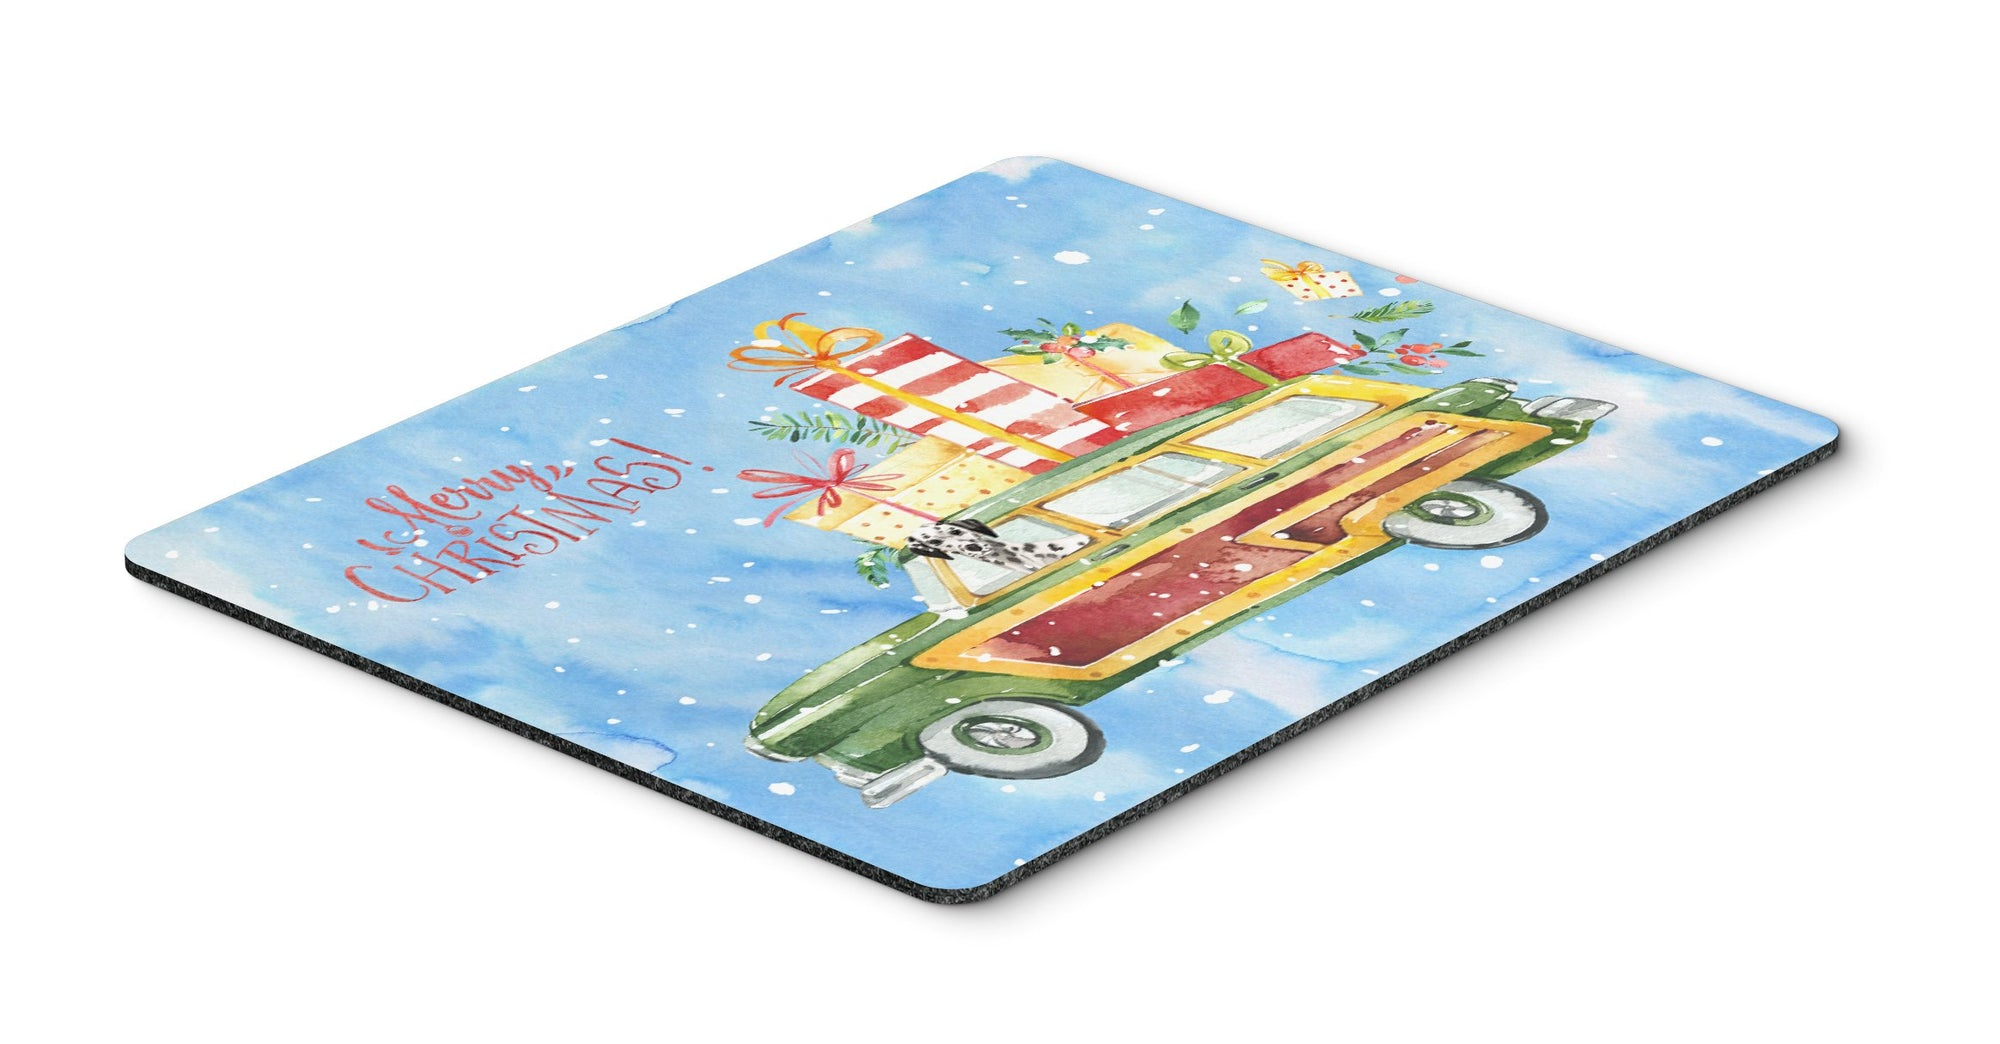 Merry Christmas Dalmatian Mouse Pad, Hot Pad or Trivet CK2452MP by Caroline's Treasures